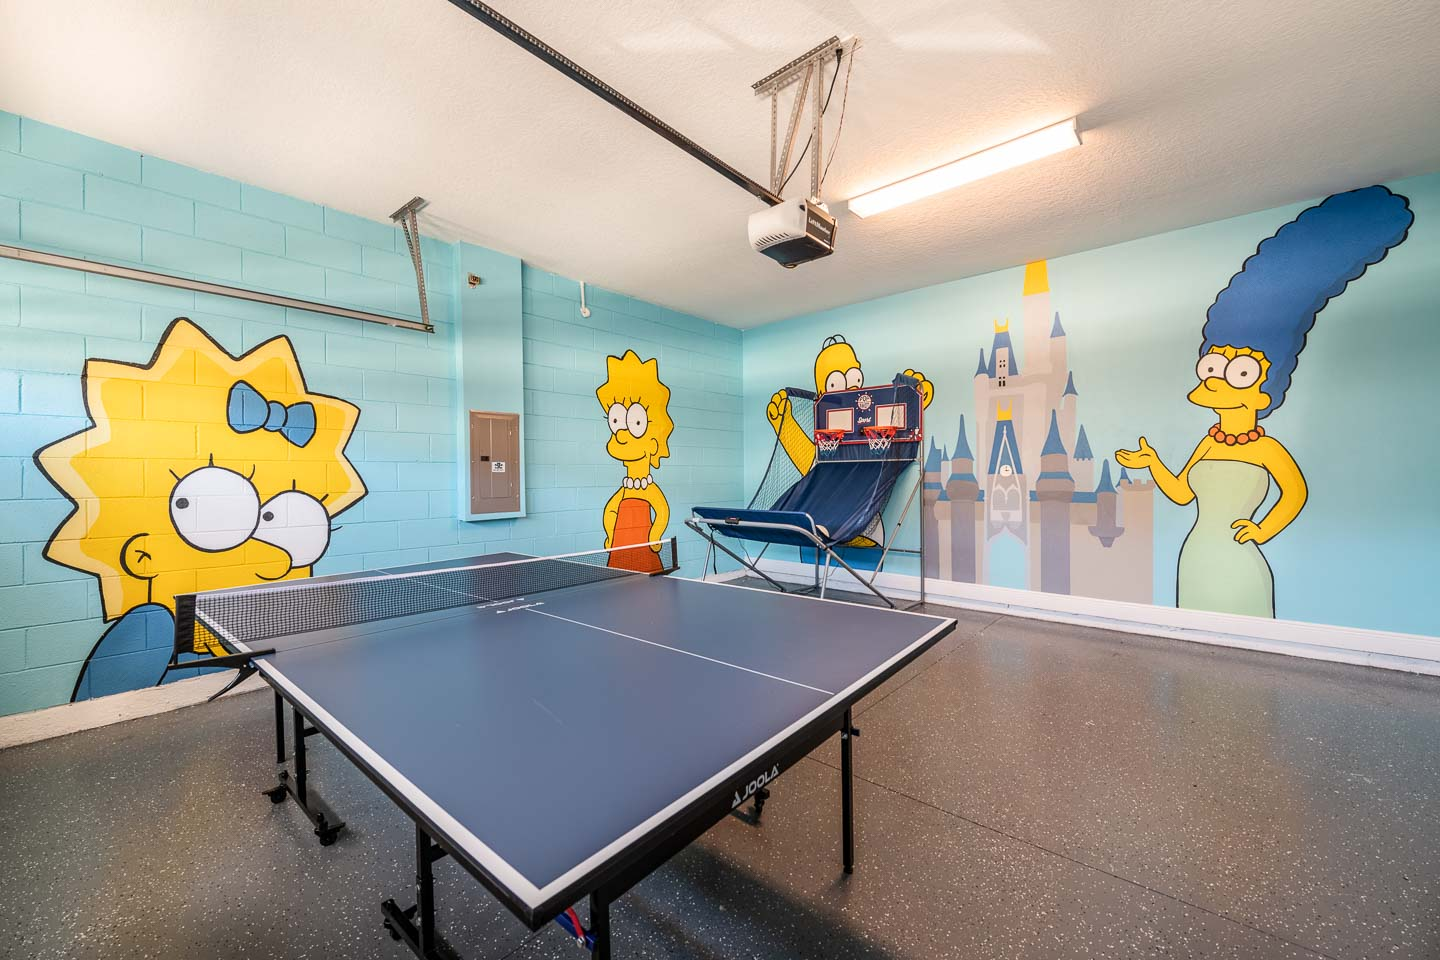 [amenities:game-room:1] Game Room